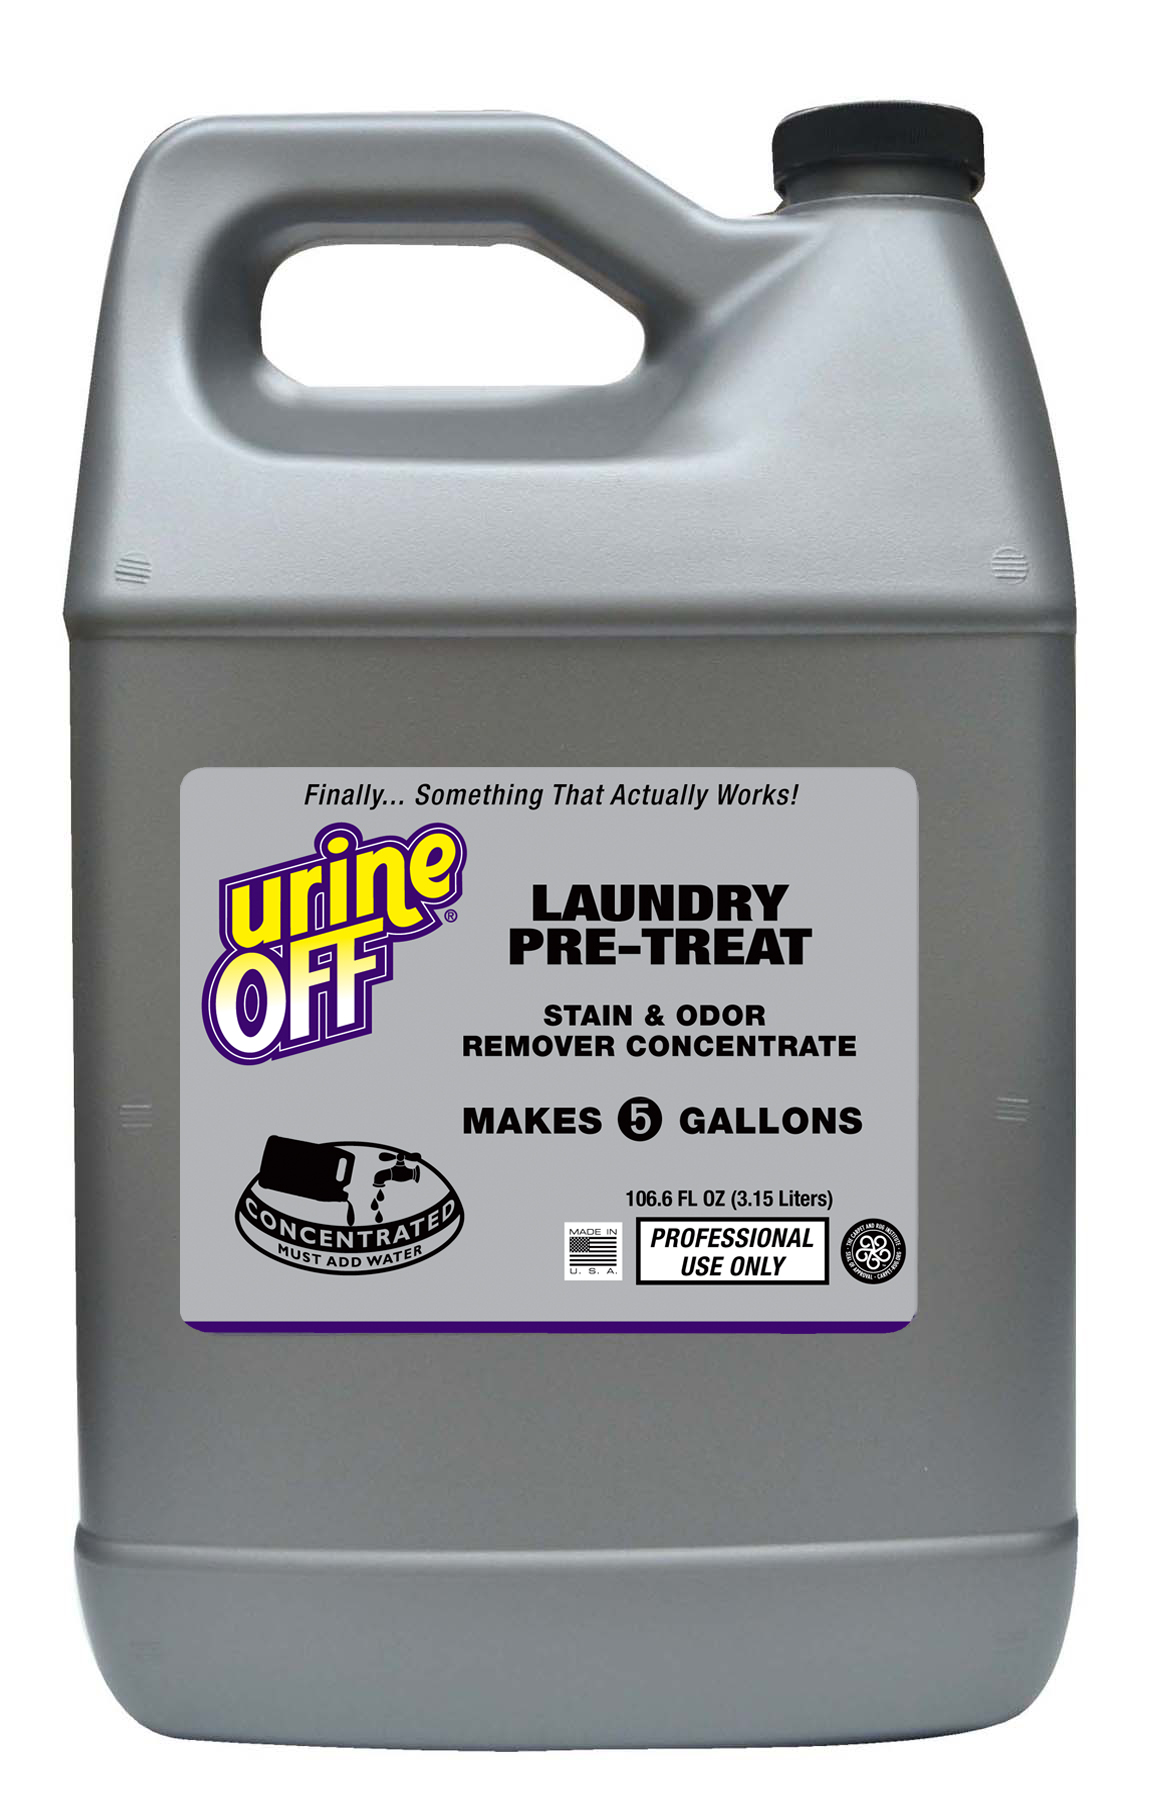 Laundry Pre-treat Refill Concentrate